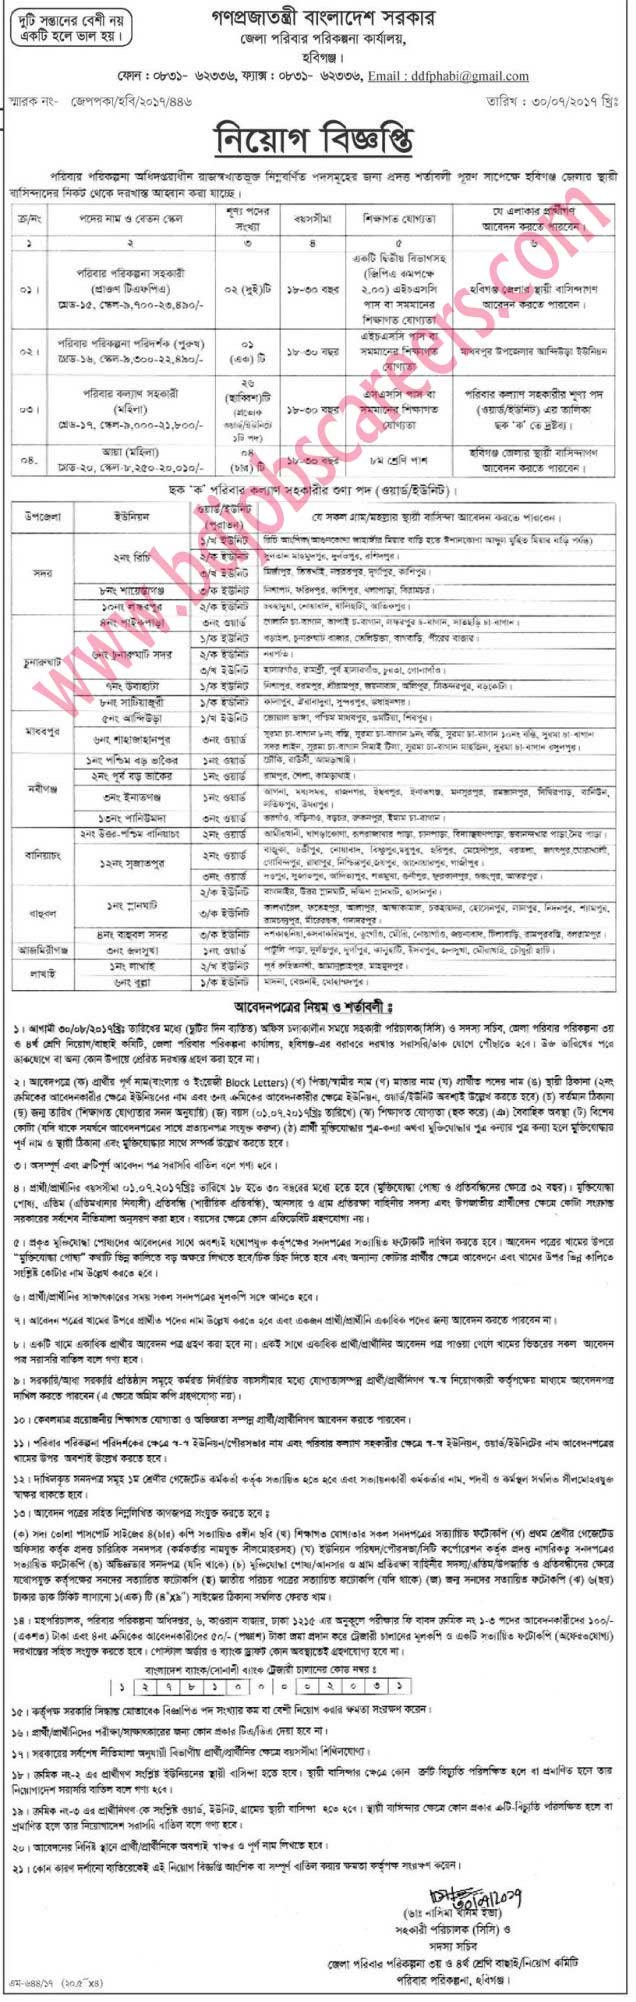 Habiganj District Family Planning Office Job Circular 2017